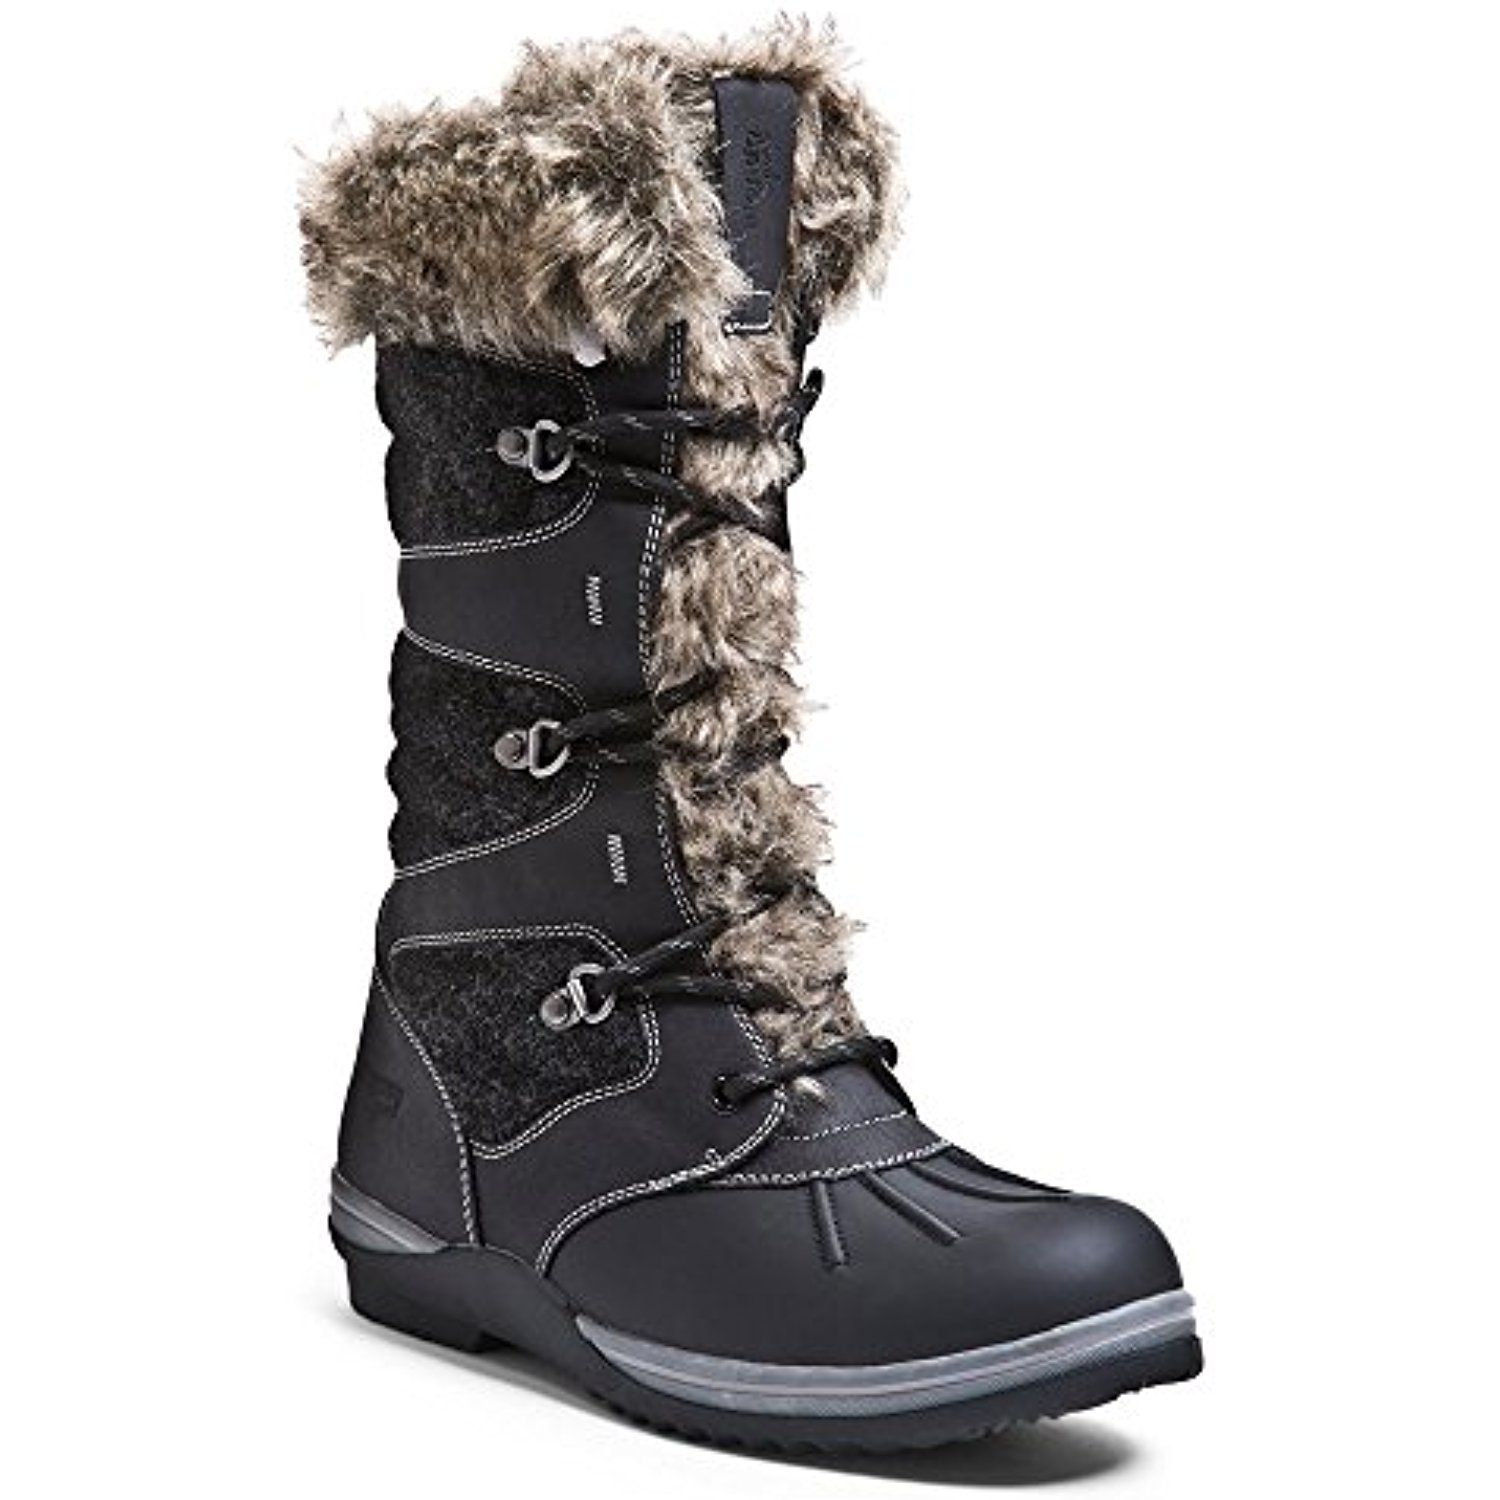 Blondo Sasha Snow Boot(Women's) -Dark Grey Recycled Leather/Felt Fashionable Sale 100% Original From China dl4ablm85A